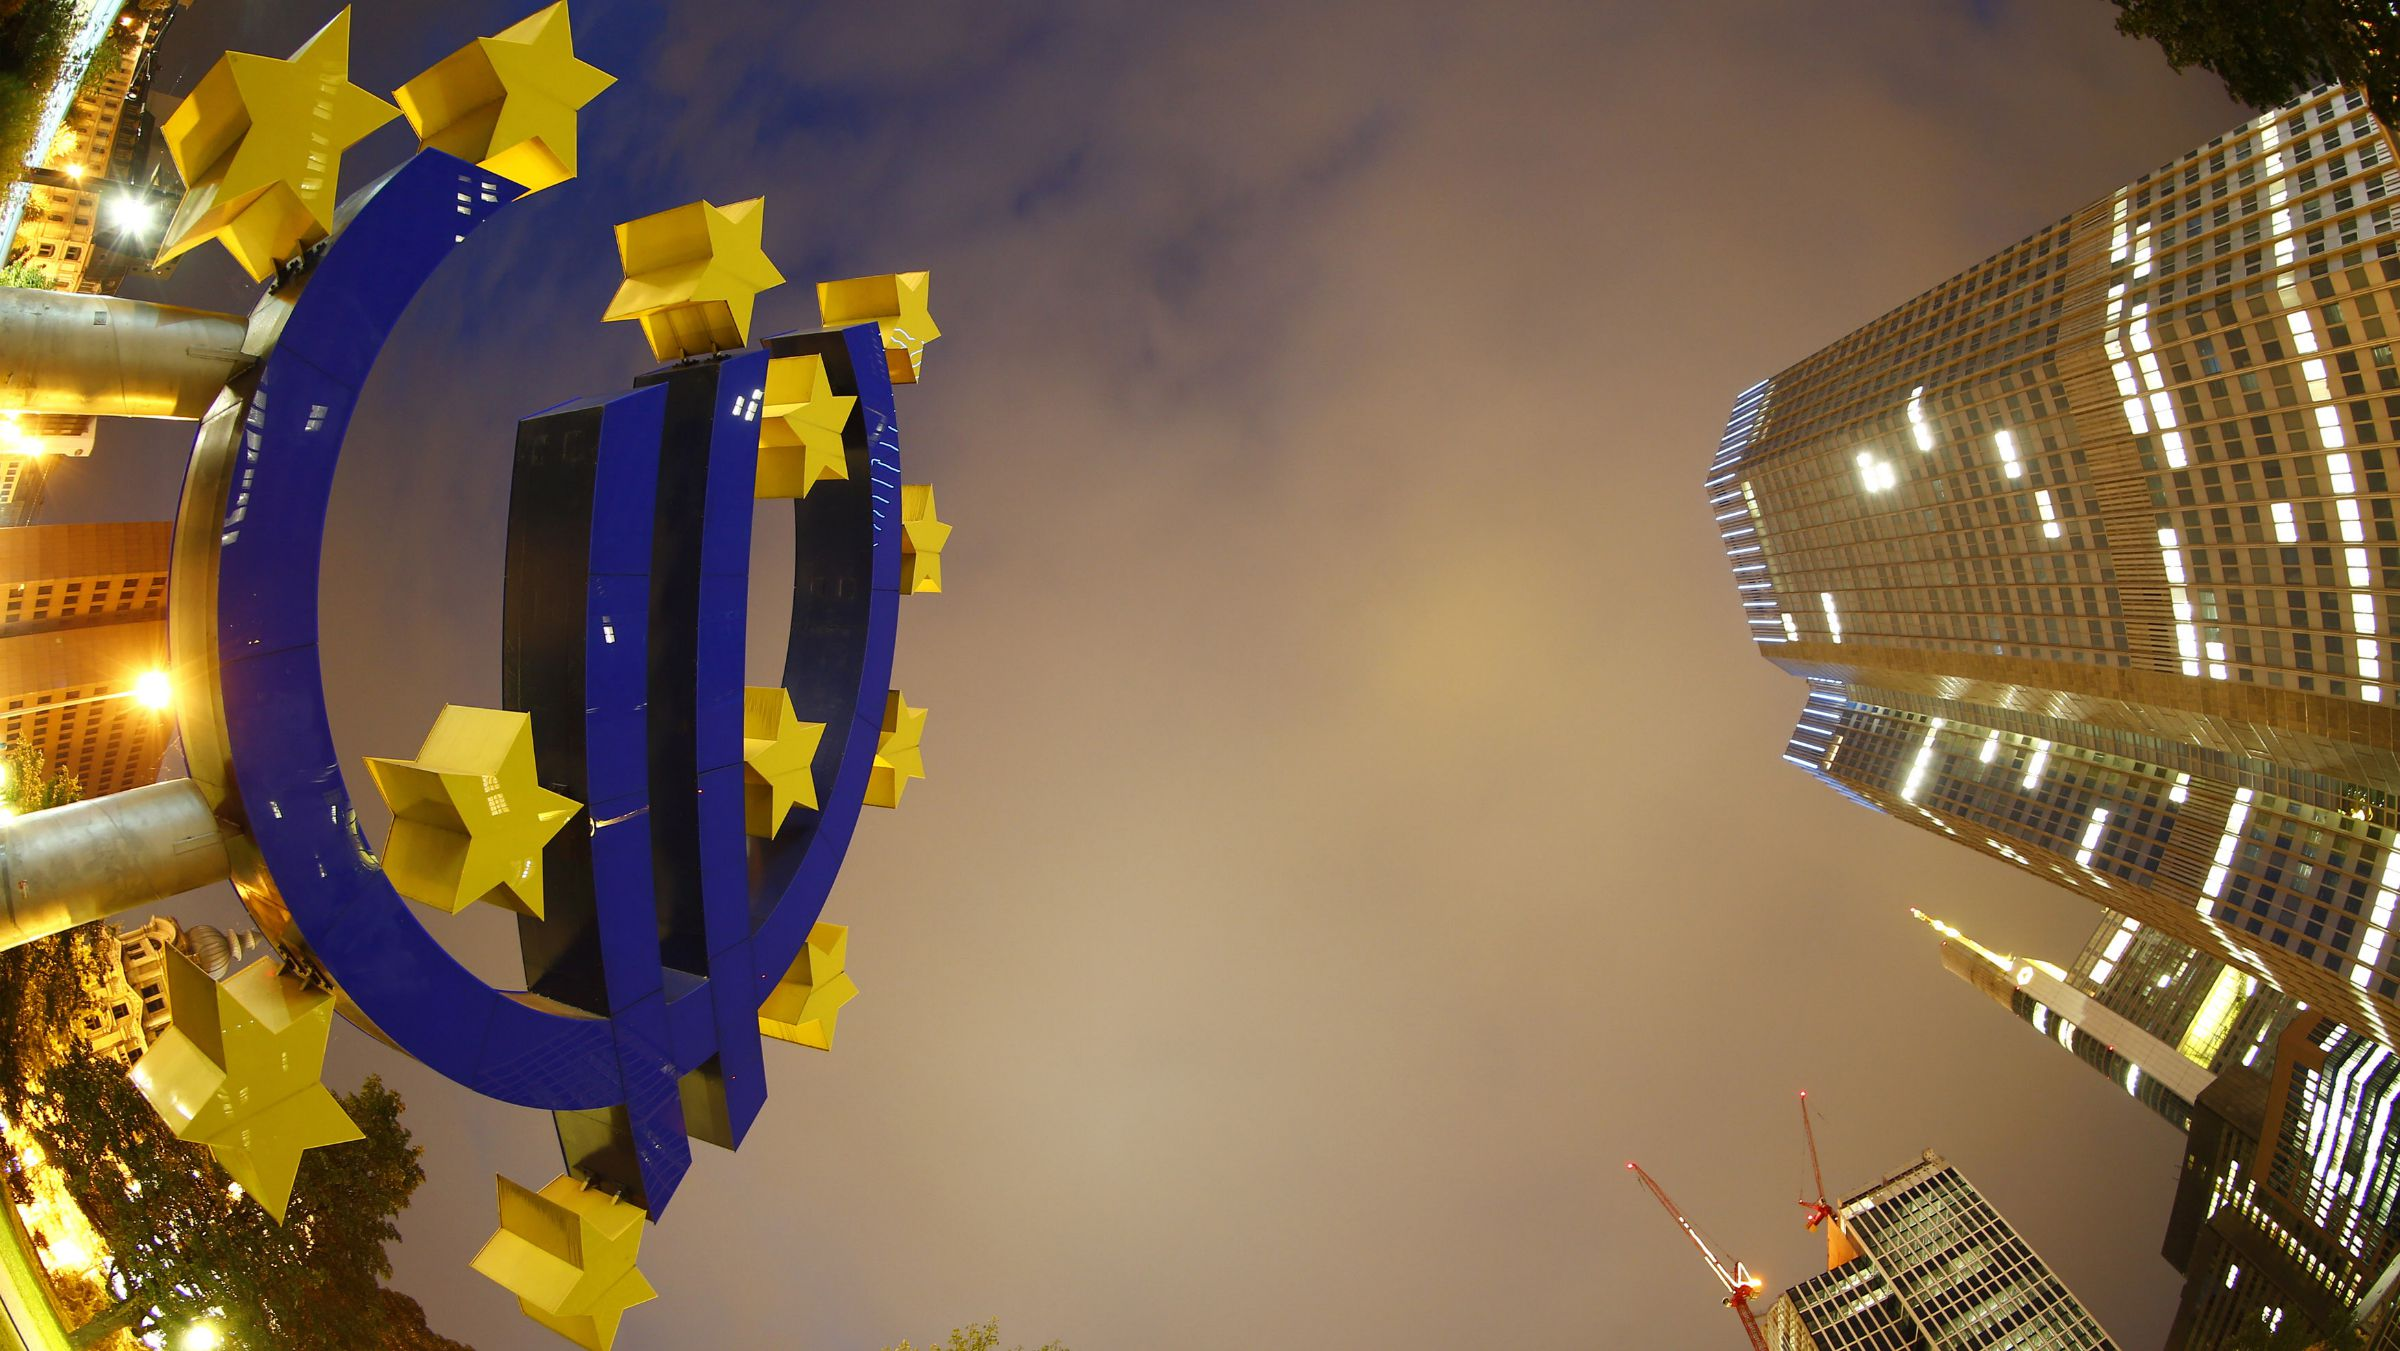 The euro sign landmark is seen at the headquarters (R) of the European Central Bank (ECB) in Frankfurt September 2, 2013. The ECB council will hold its monthly meeting on Thursday, September 5. REUTERS/Kai Pfaffenbach (GERMANY - Tags: BUSINESS TPX IMAGES OF THE DAY)